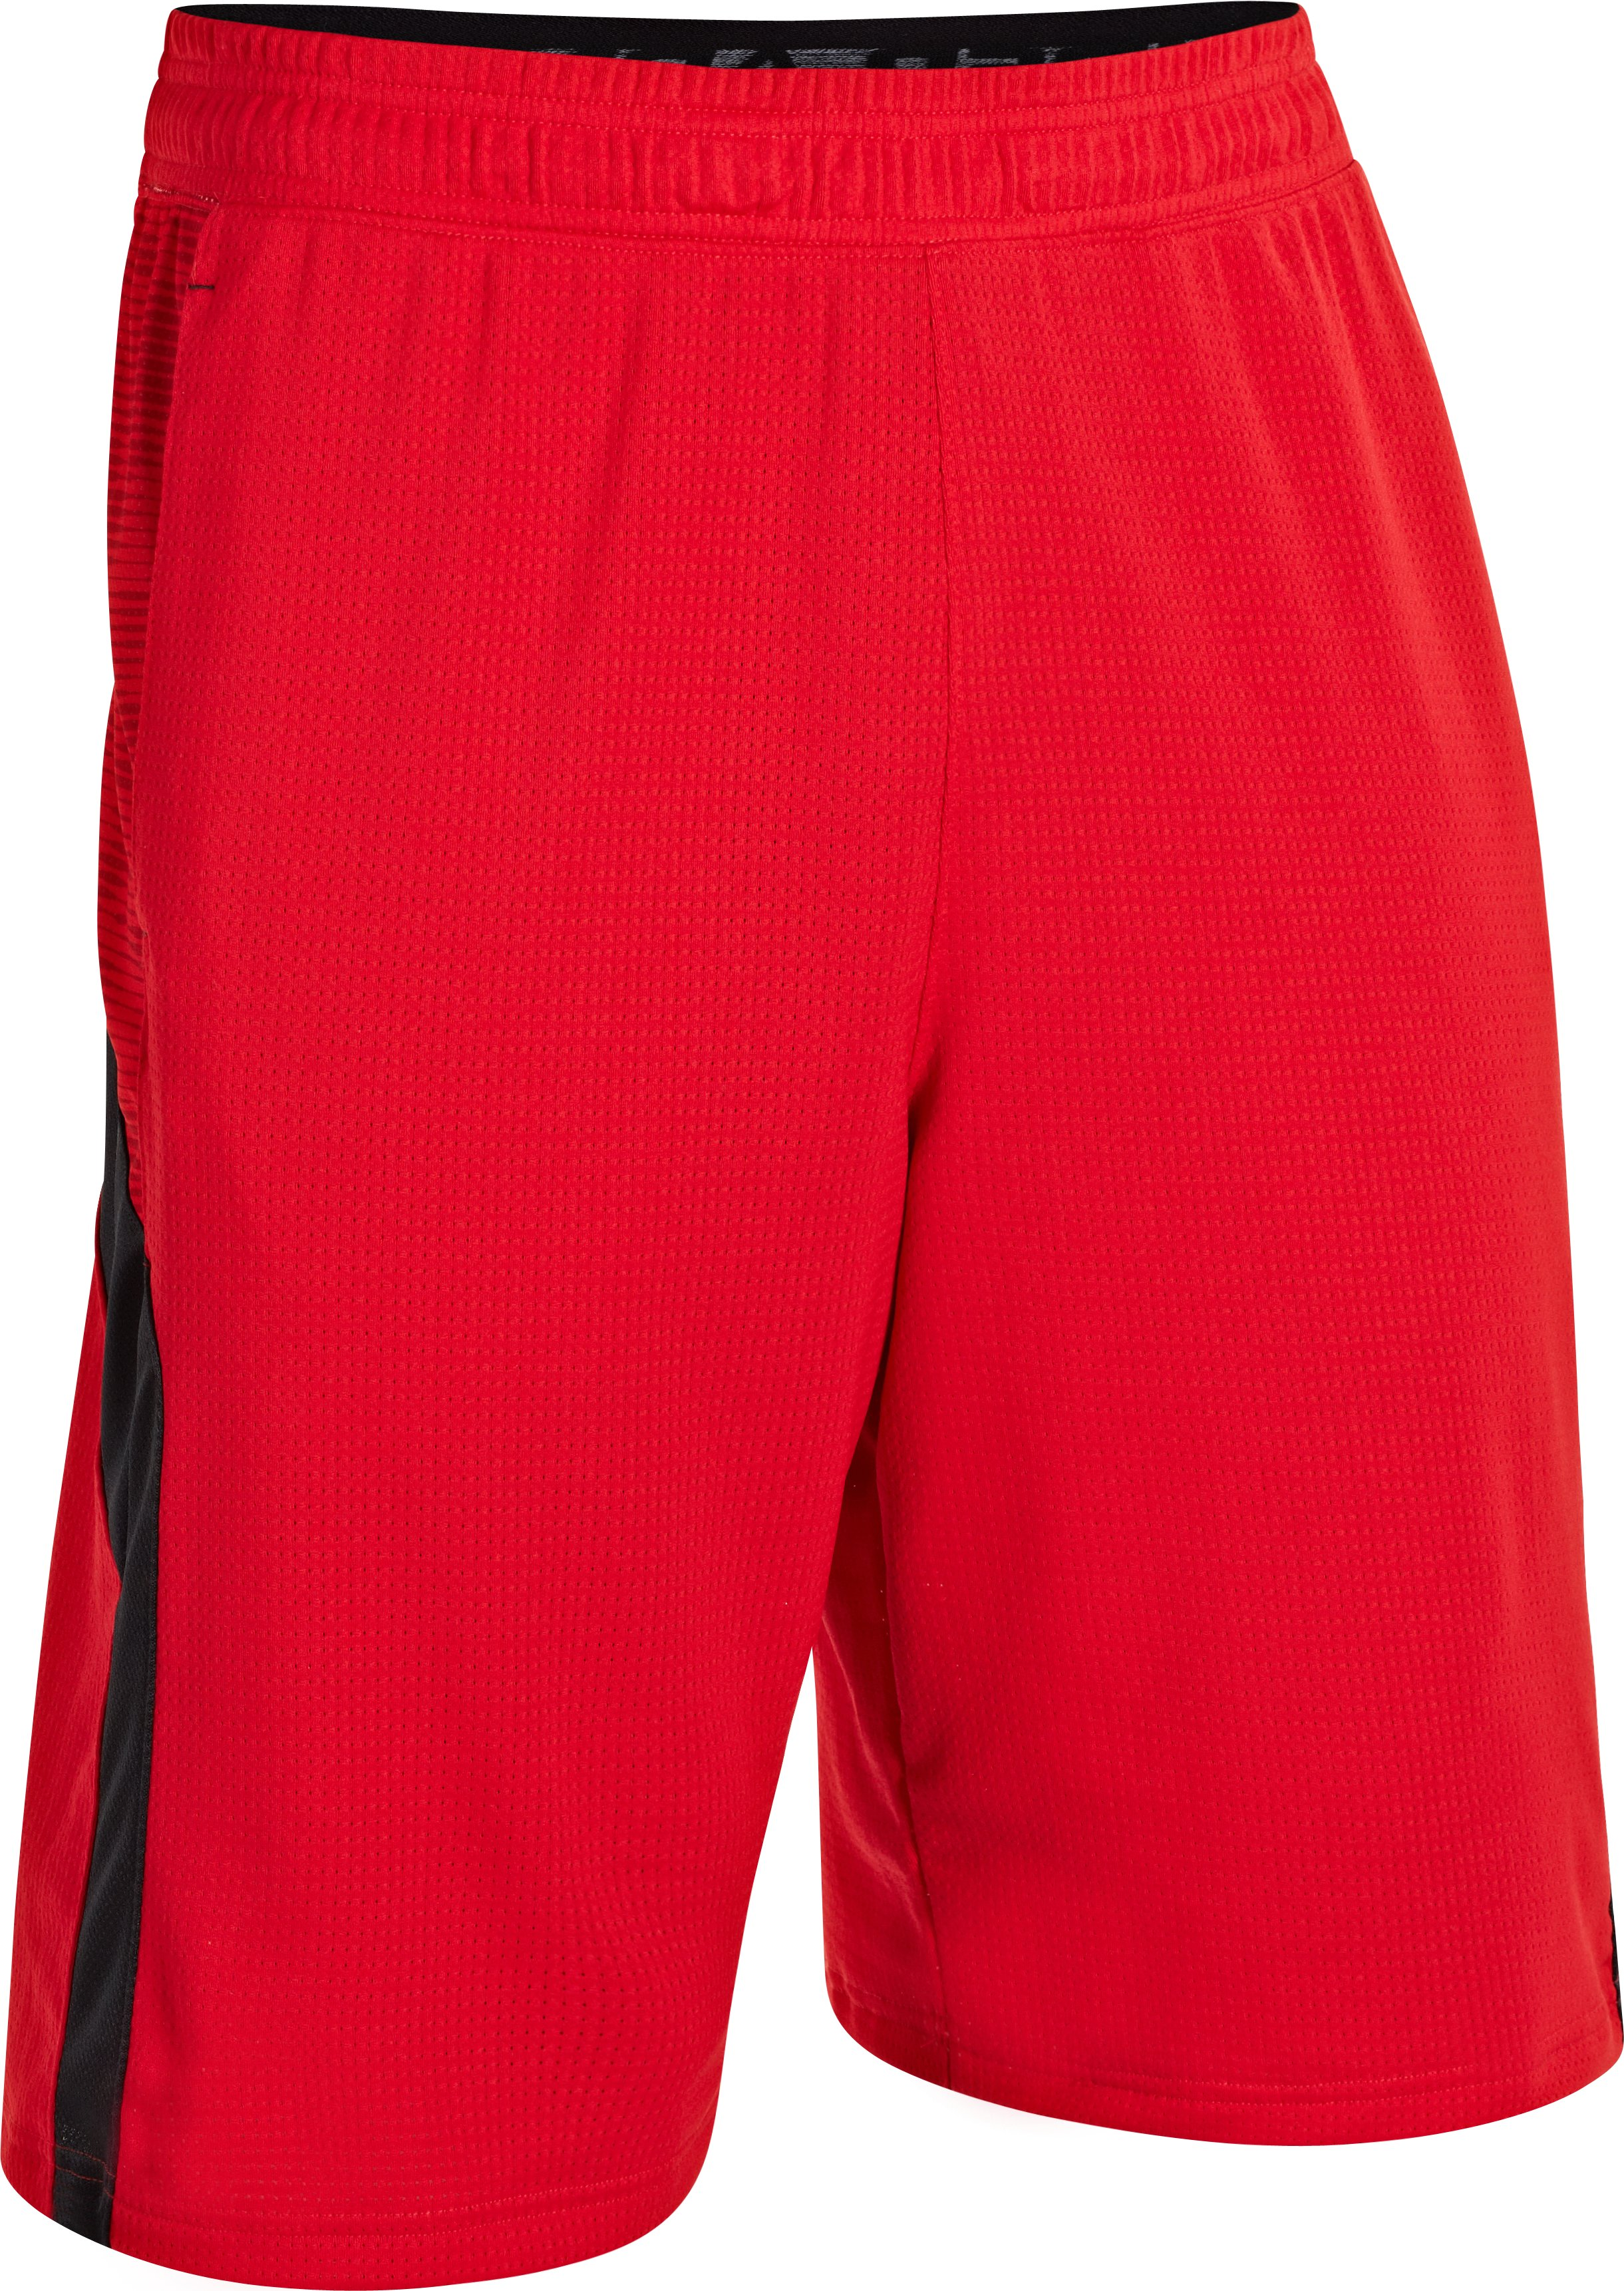 "Men's UA Ubettablieveit 12"" Shorts, Red"